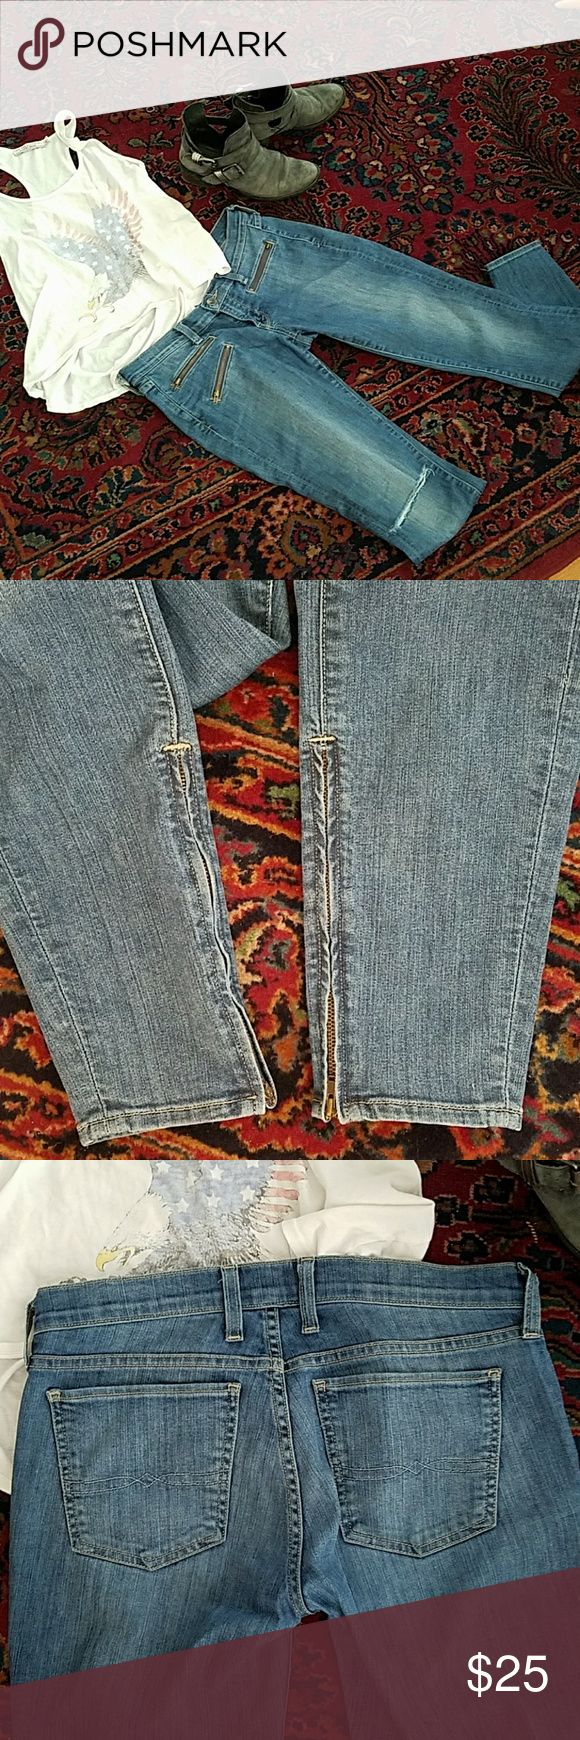 Lucky Brand Moto zipper Charlie's size 4 27 skinny These jeans were definitely one of my favorite go-to's of all my lucky brands with a super low waist, nice thin stretch denim, zippered ankle,and skinny leg. I got them when I worked at the Lucky Brand Boutique these are not from the outlet. Only signs of wear are one hole in the knee, and one of the ankle zippers lost its pull, though it still works perfectly. These are medium light wash. Lucky Brand Jeans Skinny